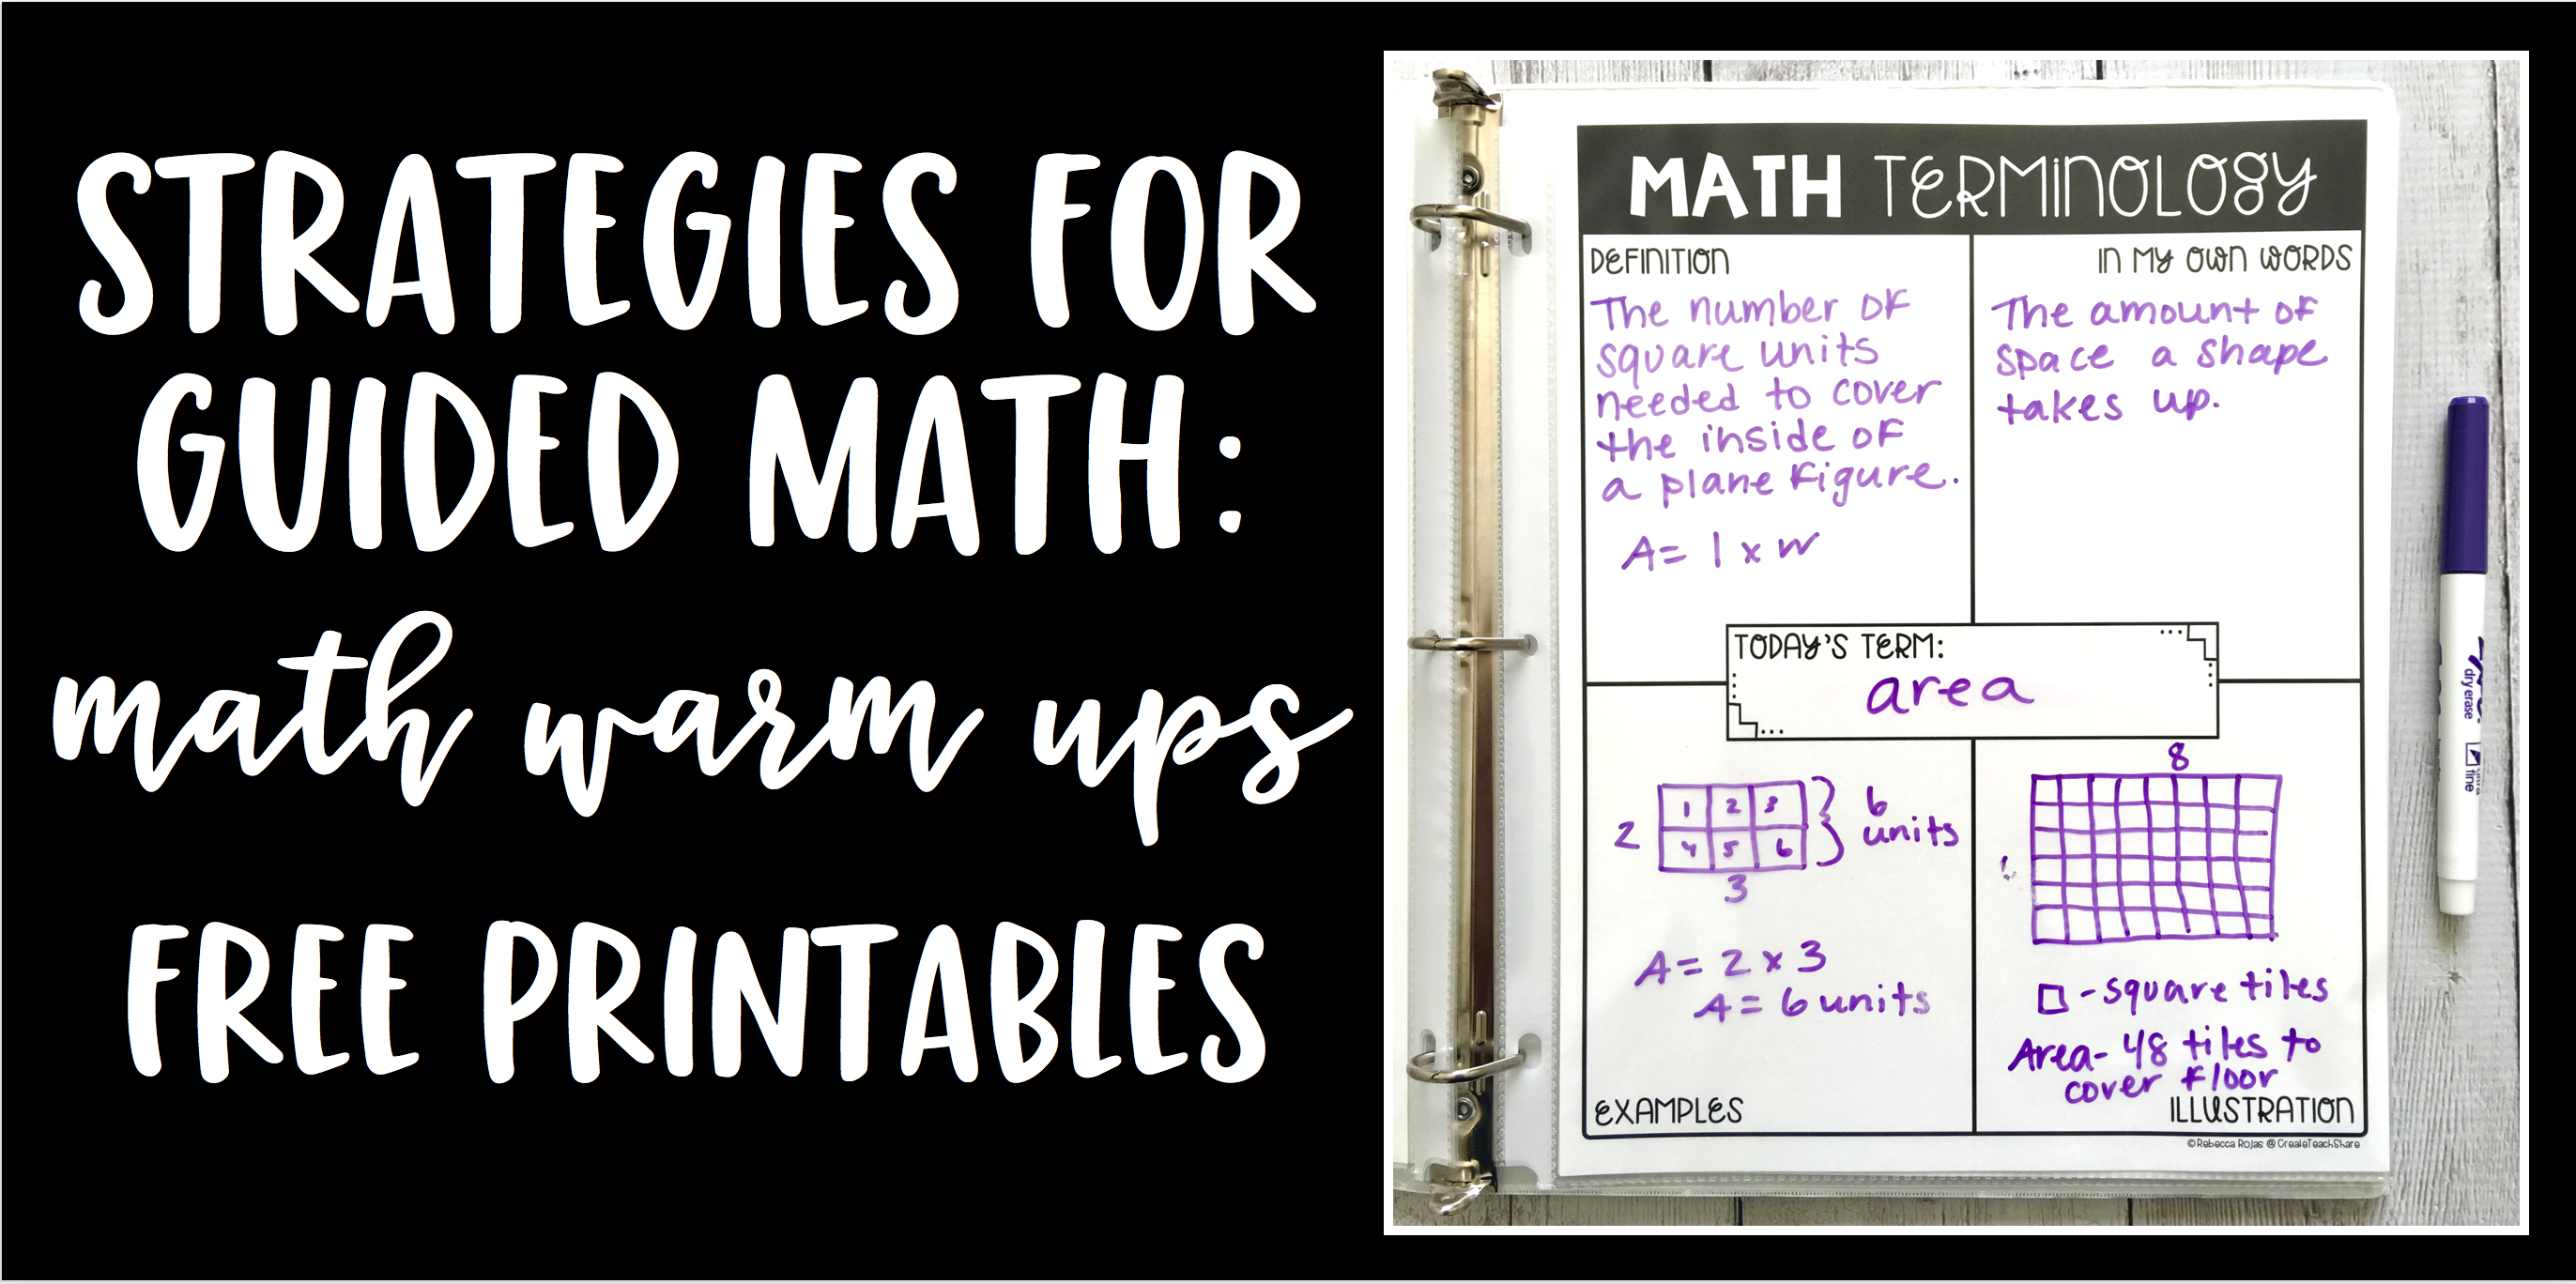 Smashing Strategies for Guided Math: Starting the Day With Math Warm-Ups